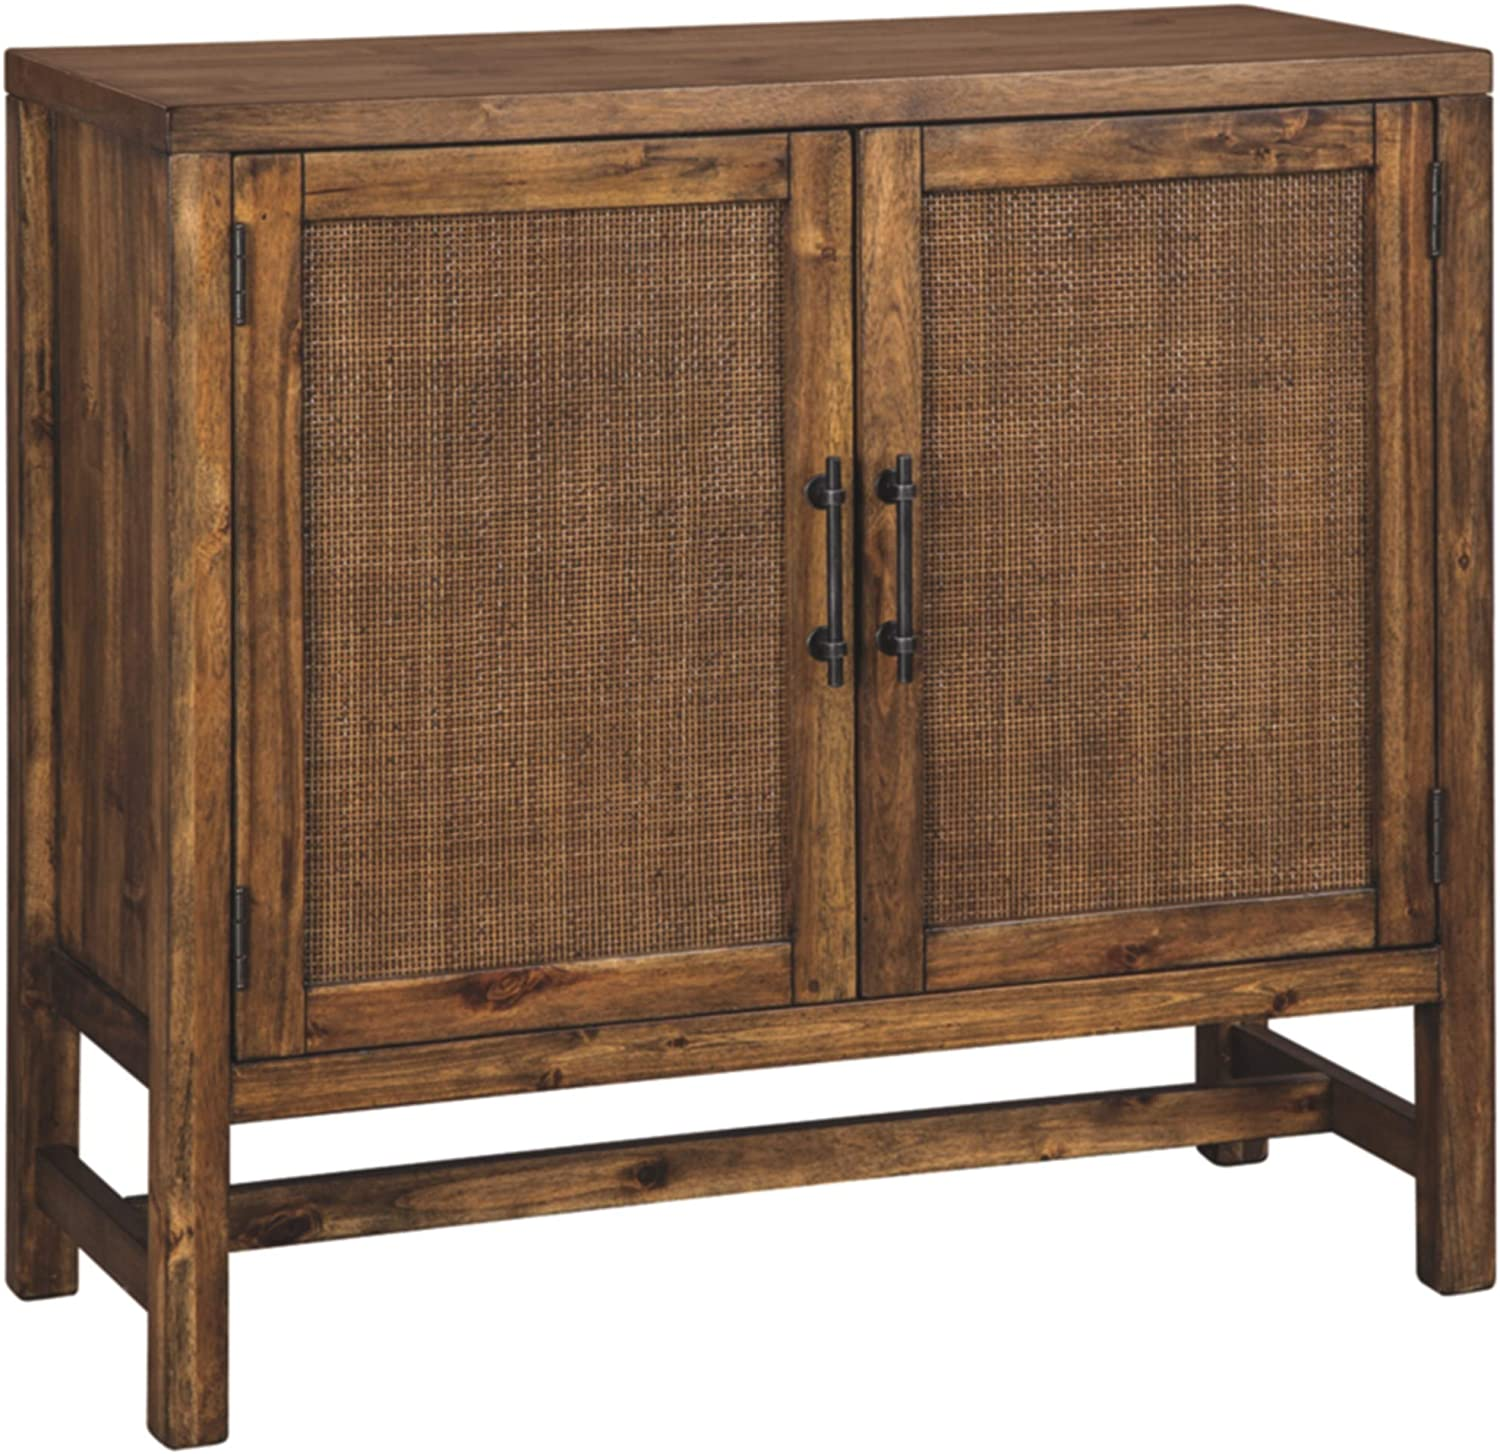 Ashley Furniture Signature Design - Beckings Accent Cabinet - Brown